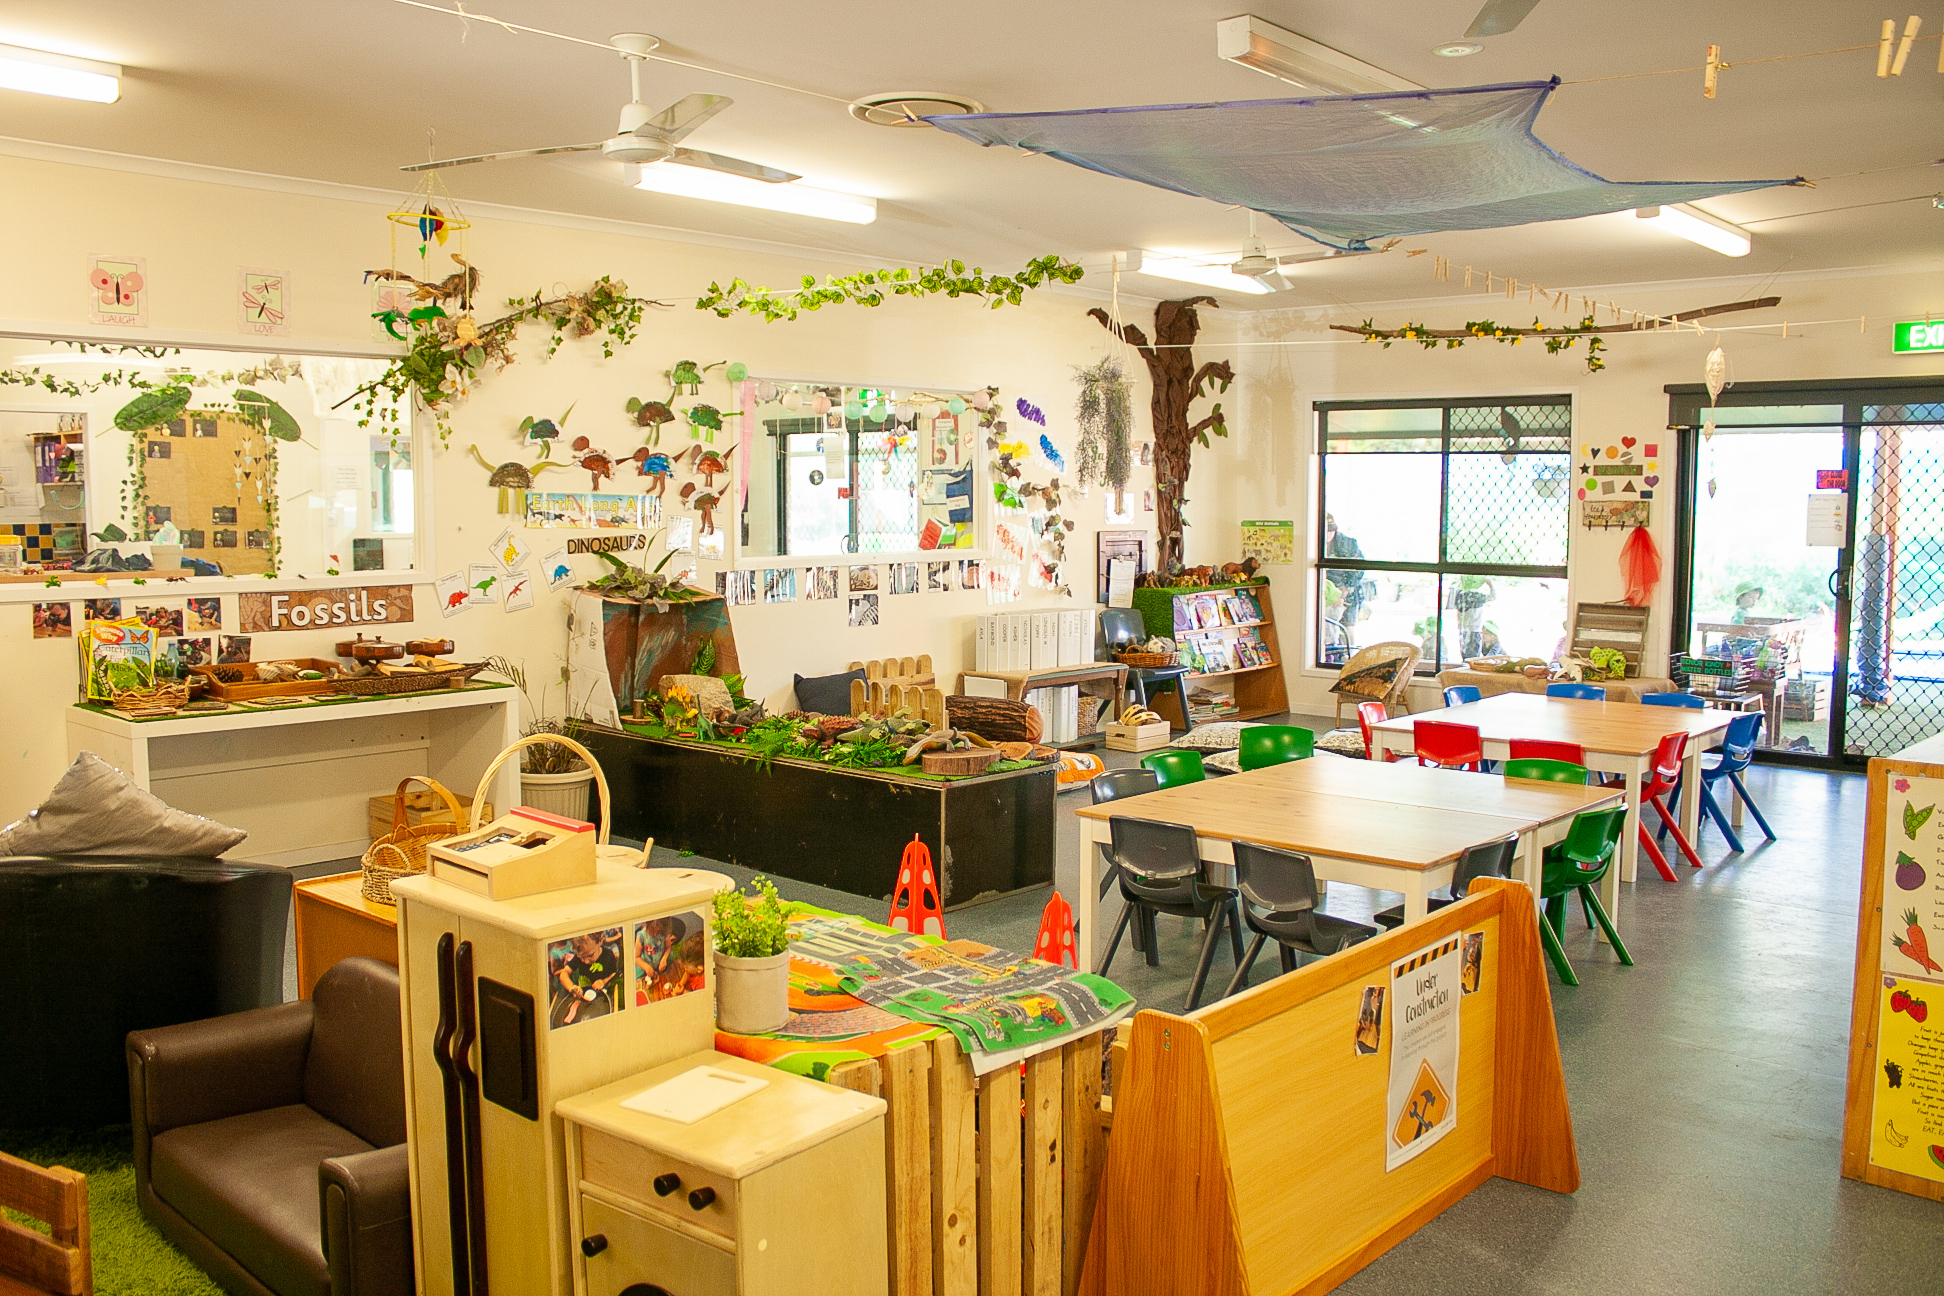 Colourful classroom with art and craft pieces hanging from ceiling